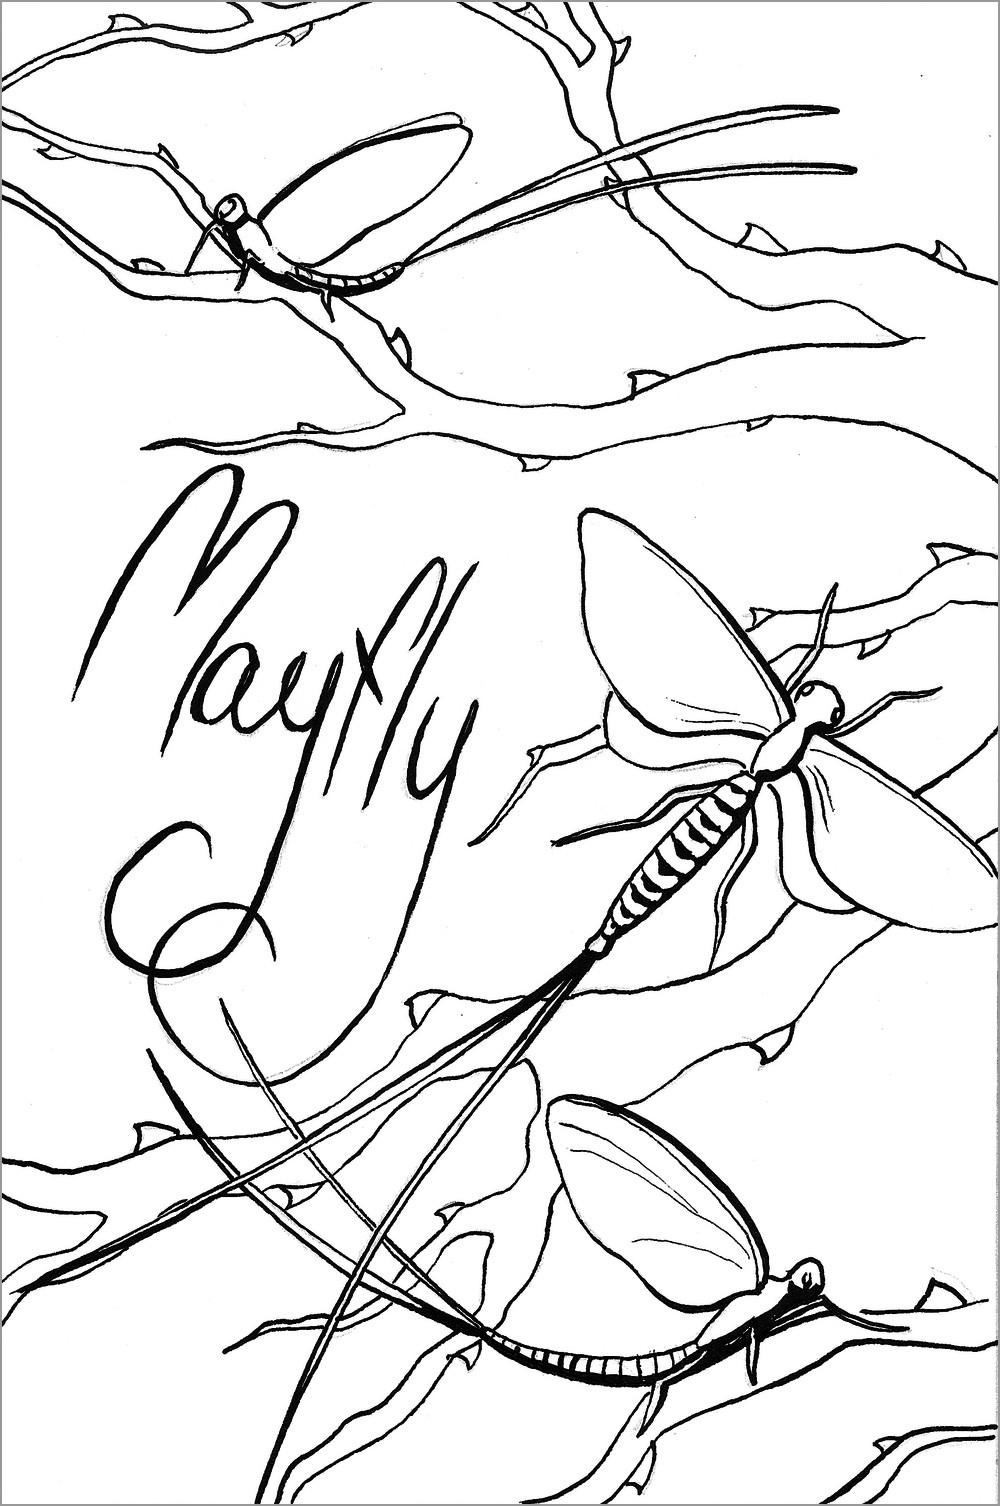 Mayfly Coloring Page to Print